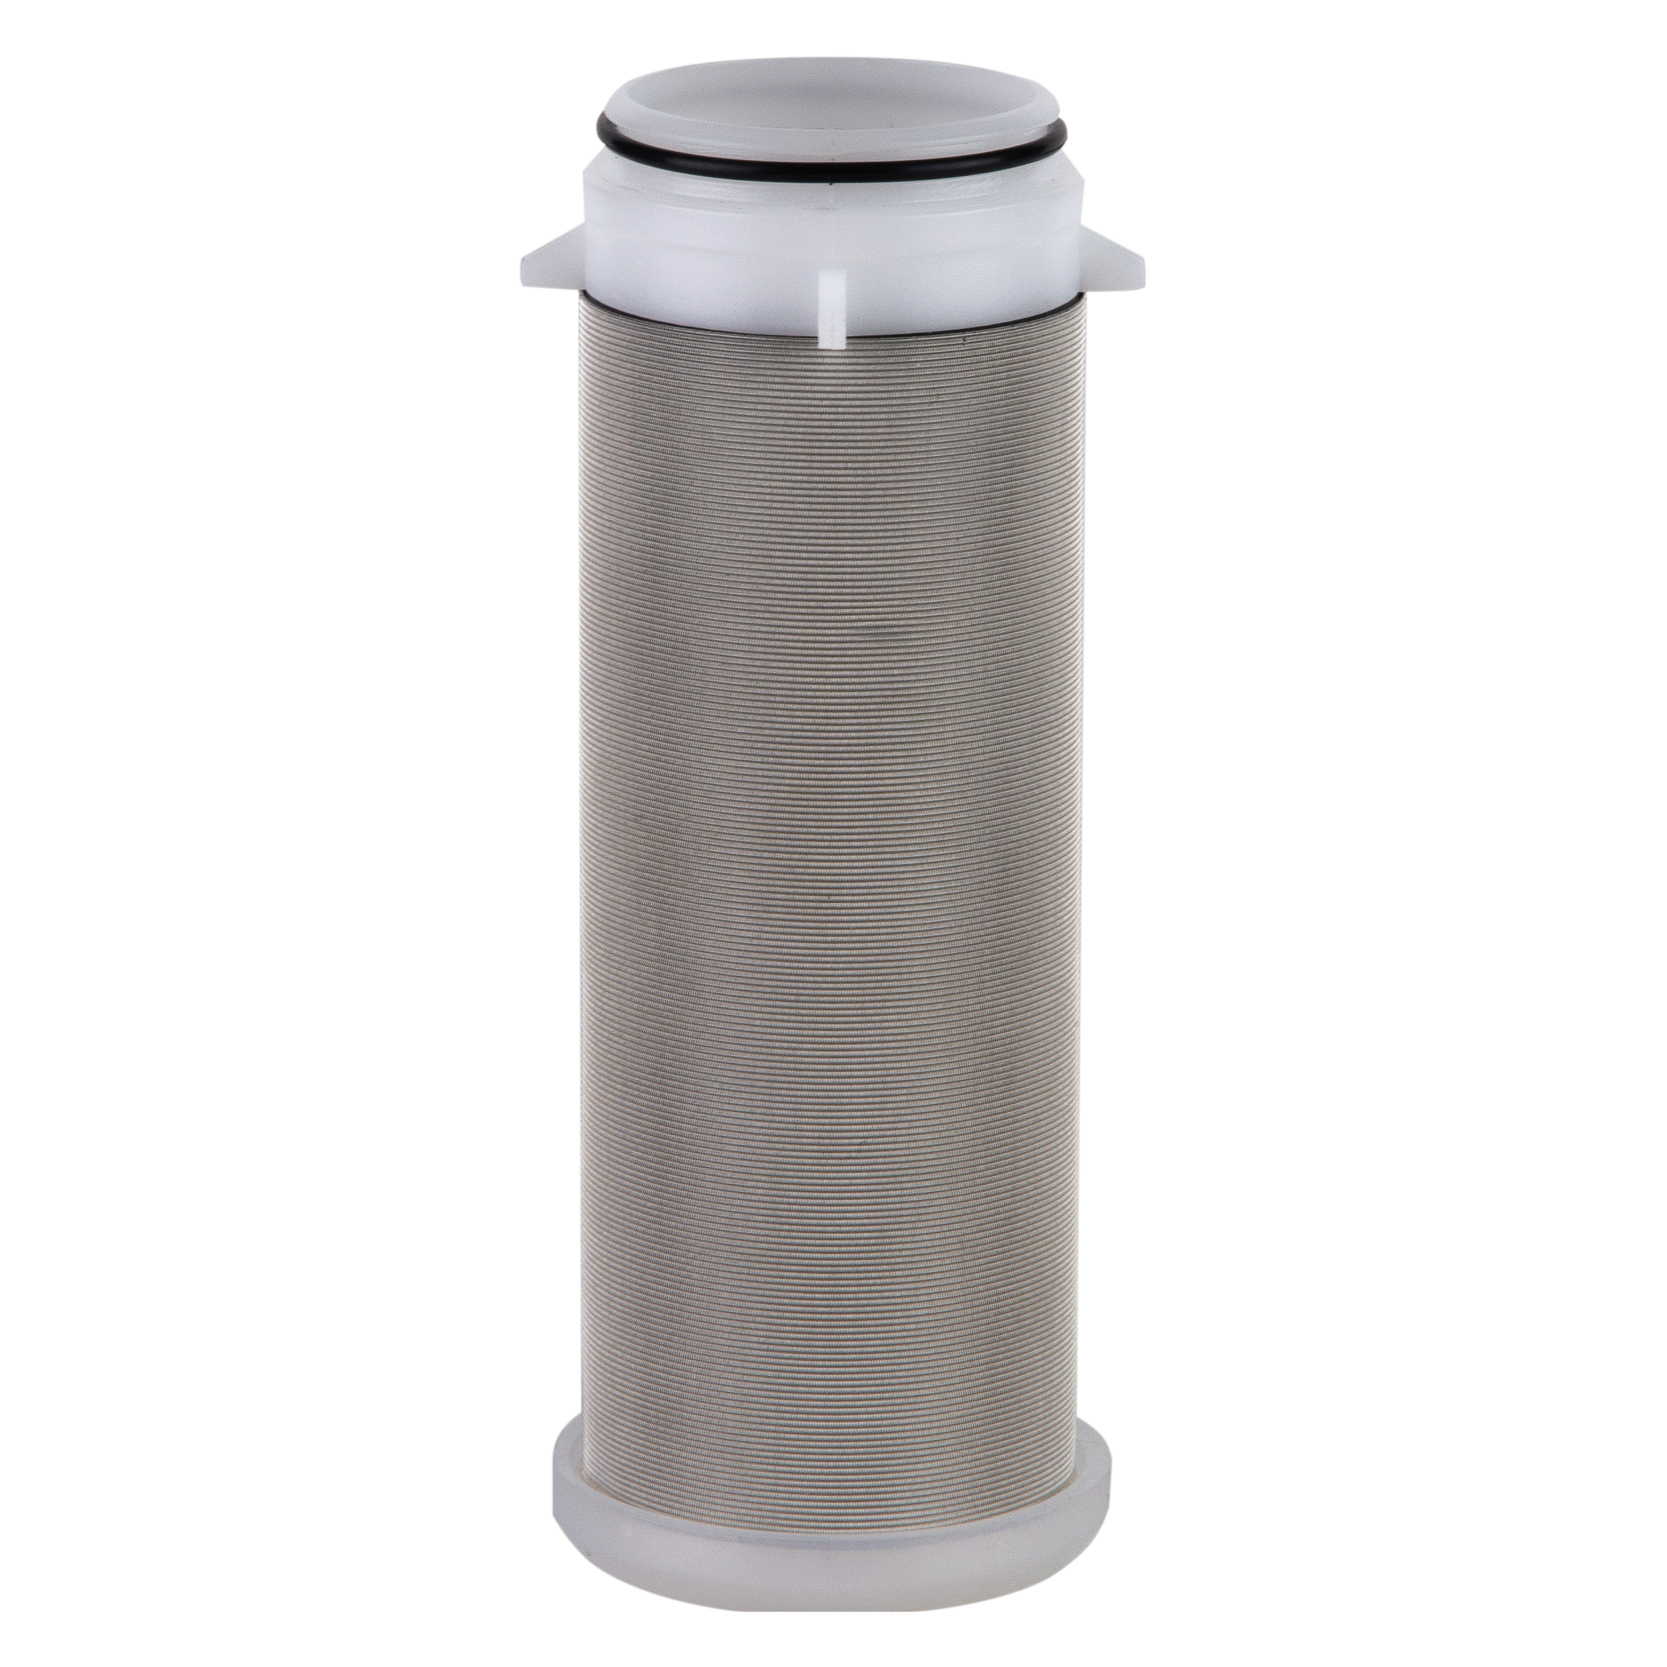 iSpring WSP-50 Spin Down Sediment Filter Replacement Cartridge